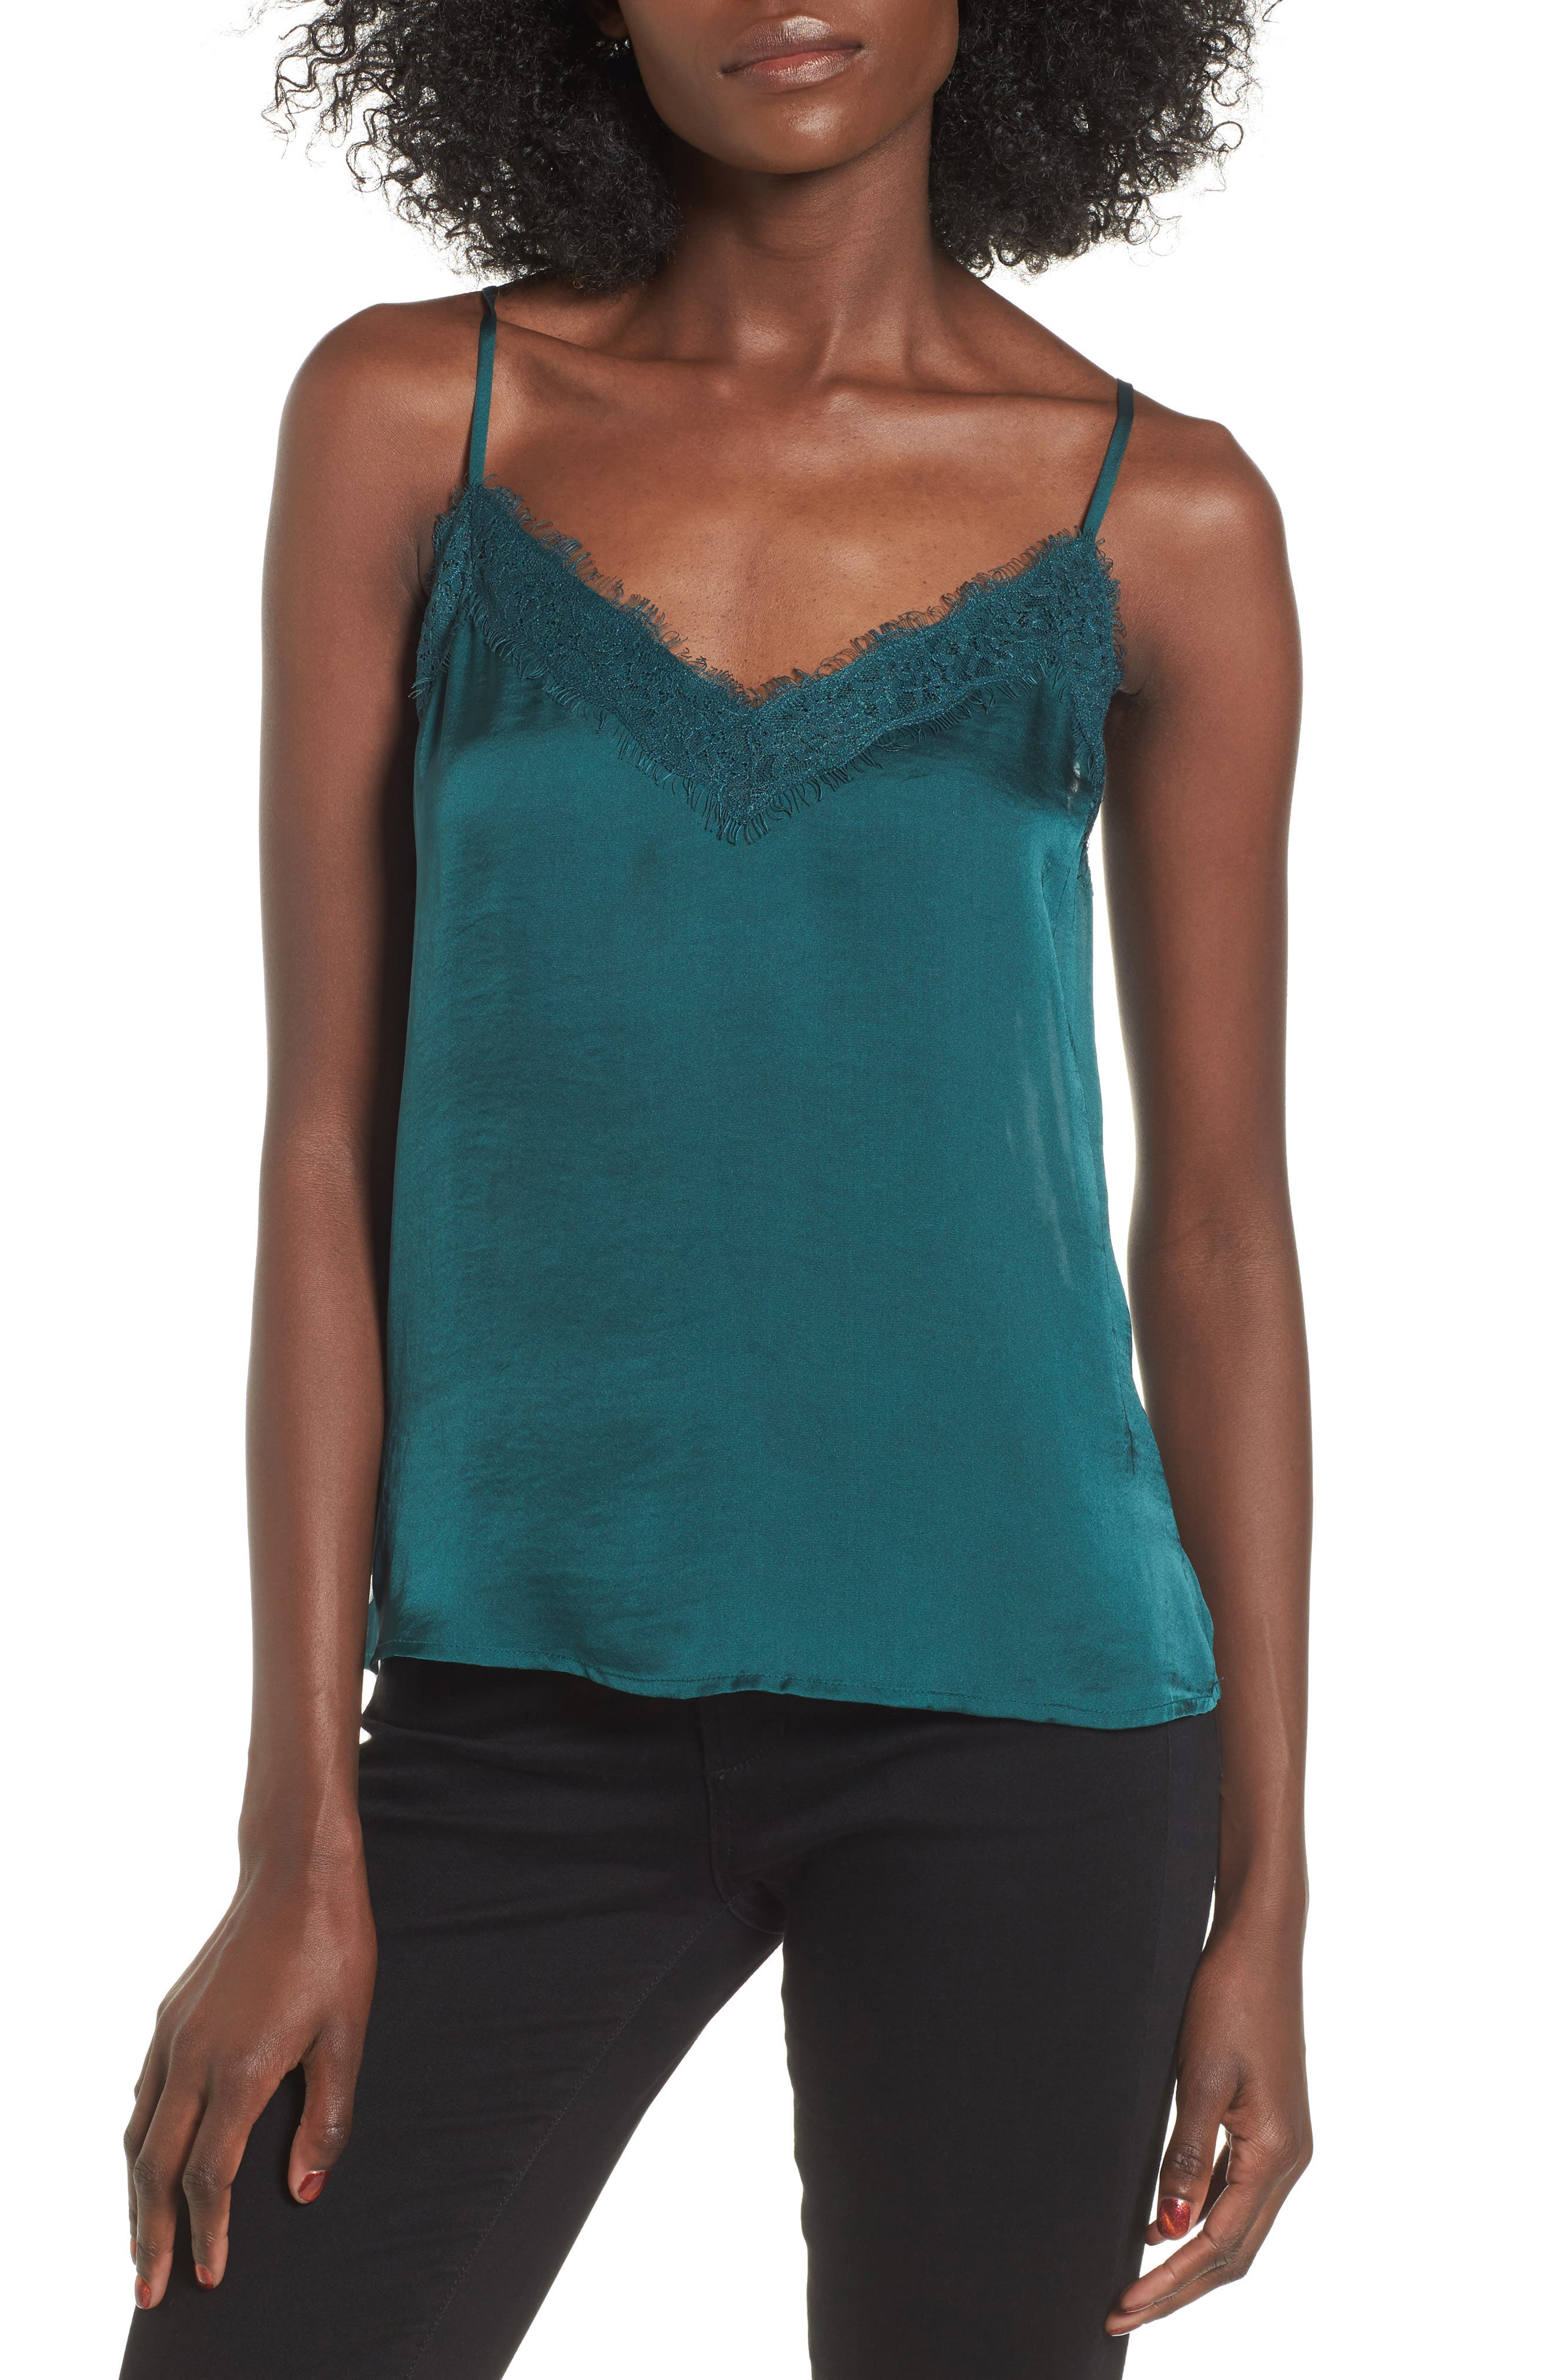 Alternate Image 1 Selected - BP. Lace Trim Satin Camisole